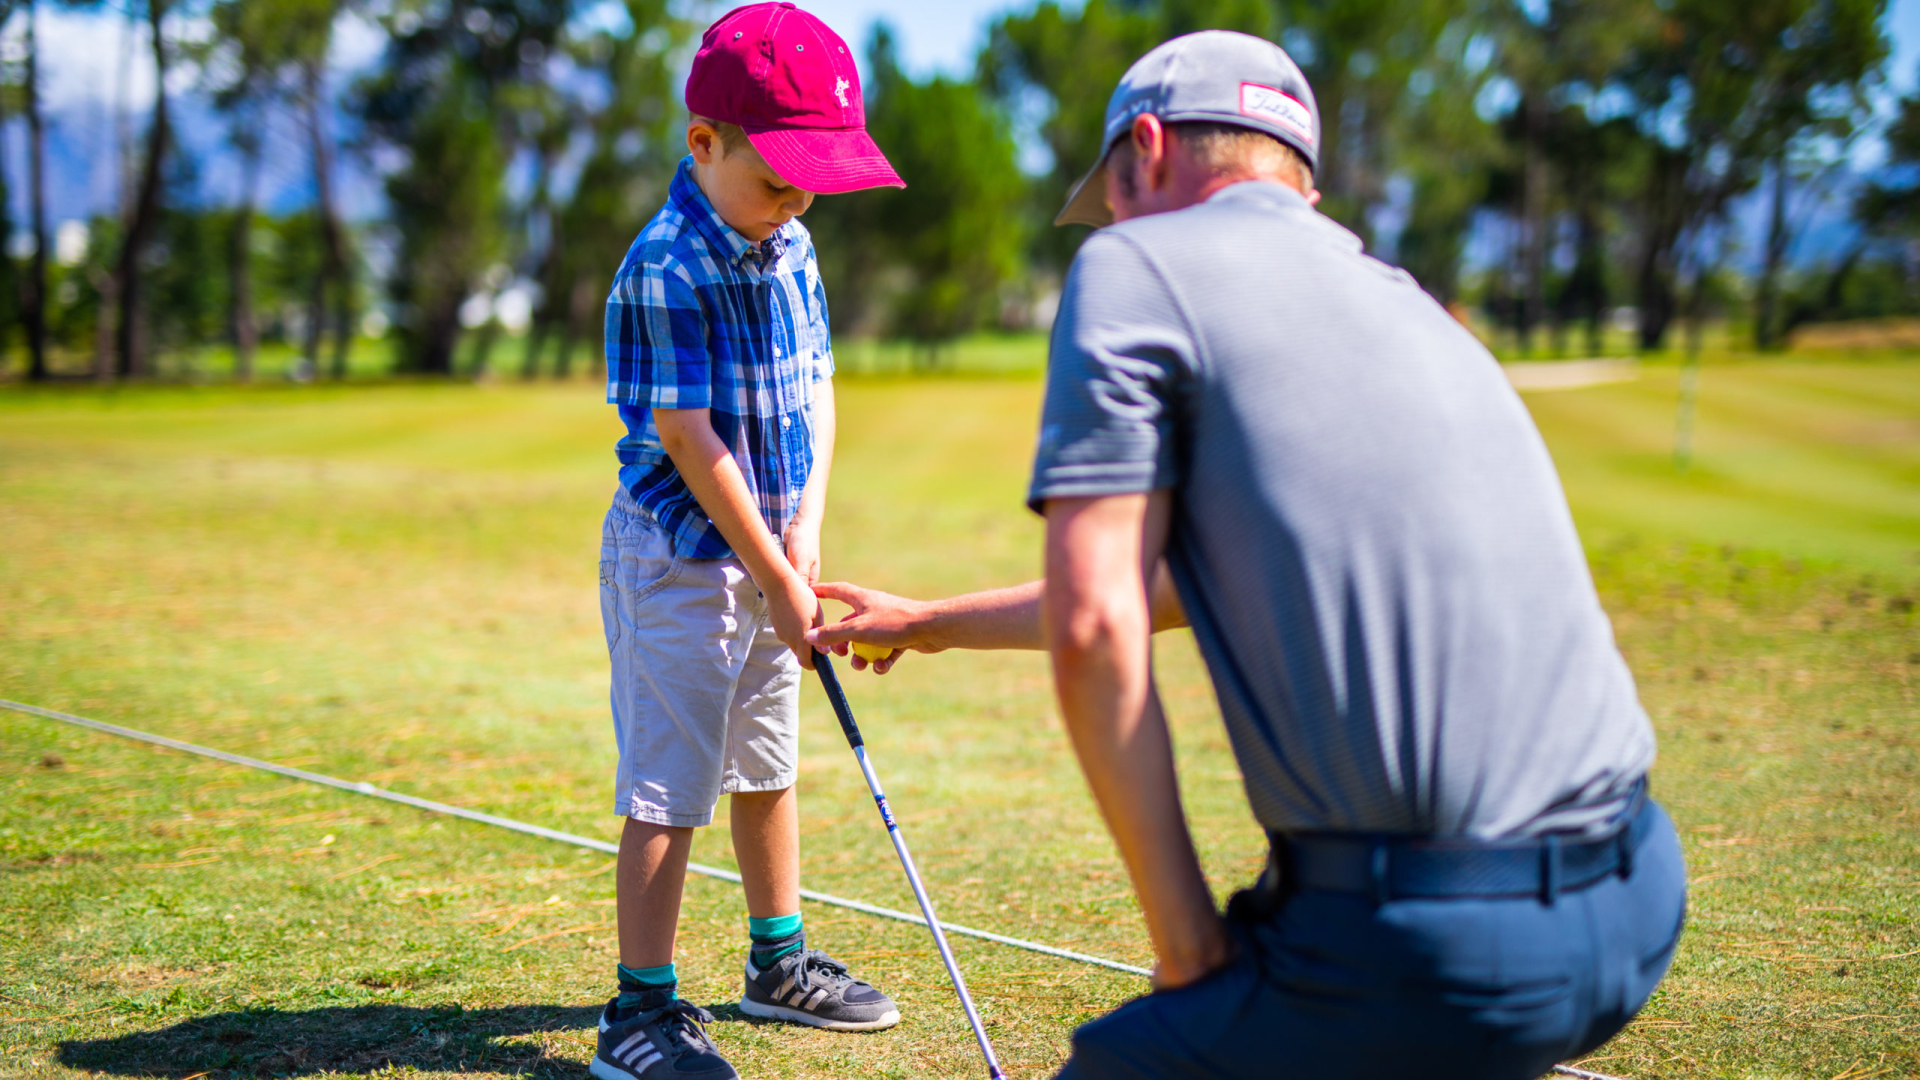 Pearl Valley Golf Course Zuid-Afrika Kids